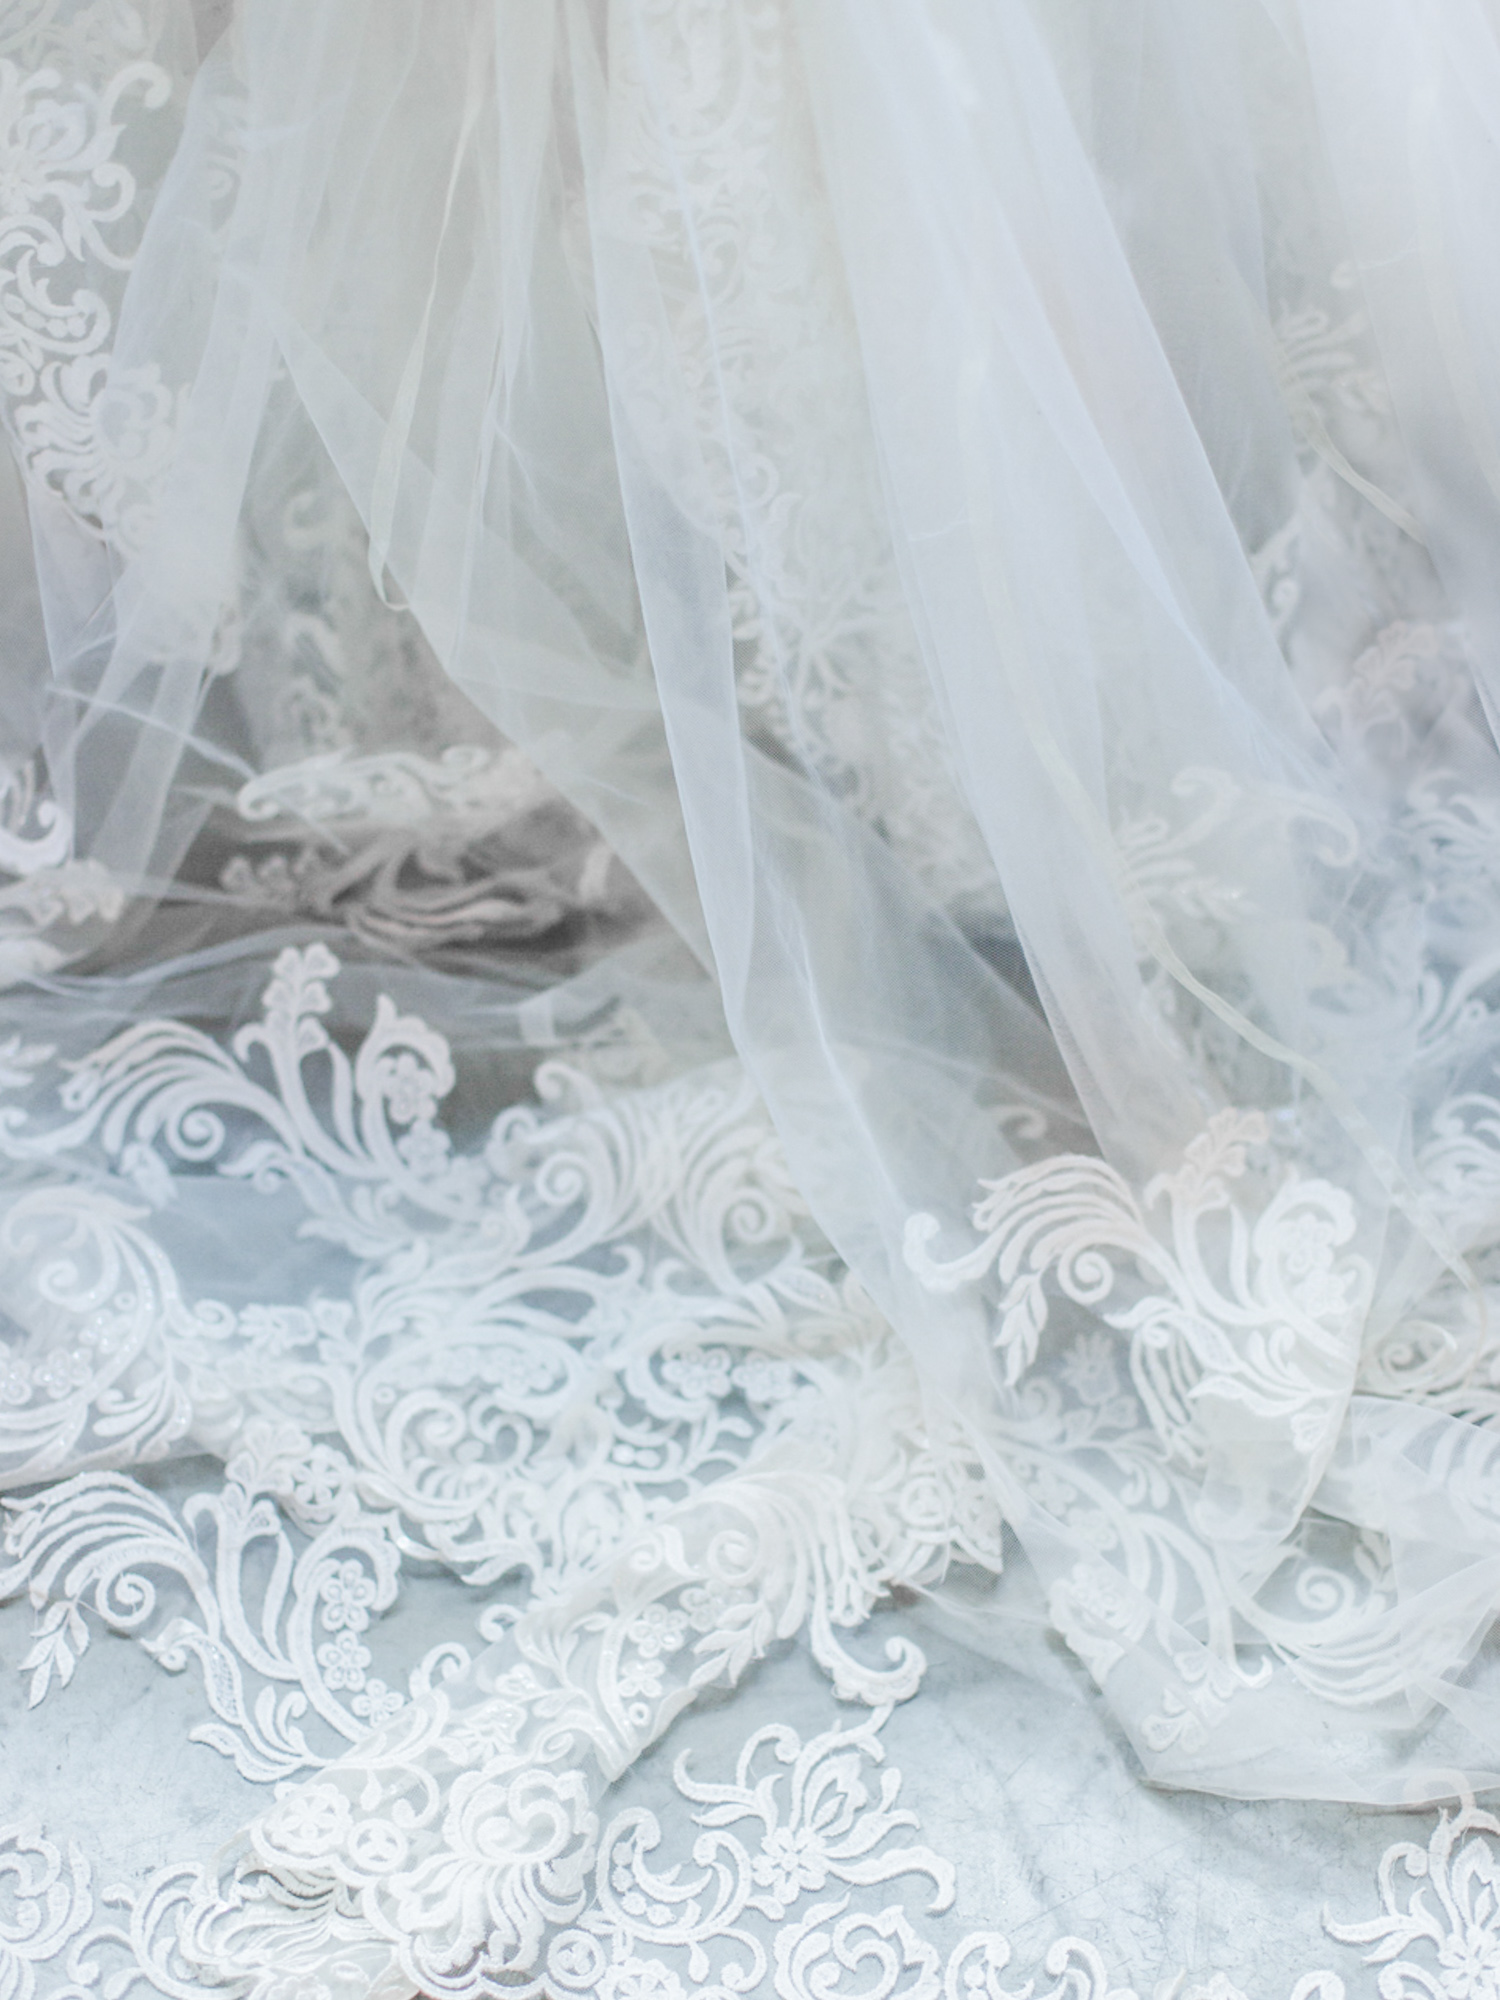 ethereal wedding dress and veil lace puddles on the floor at The Brick in South Bend, Indiana